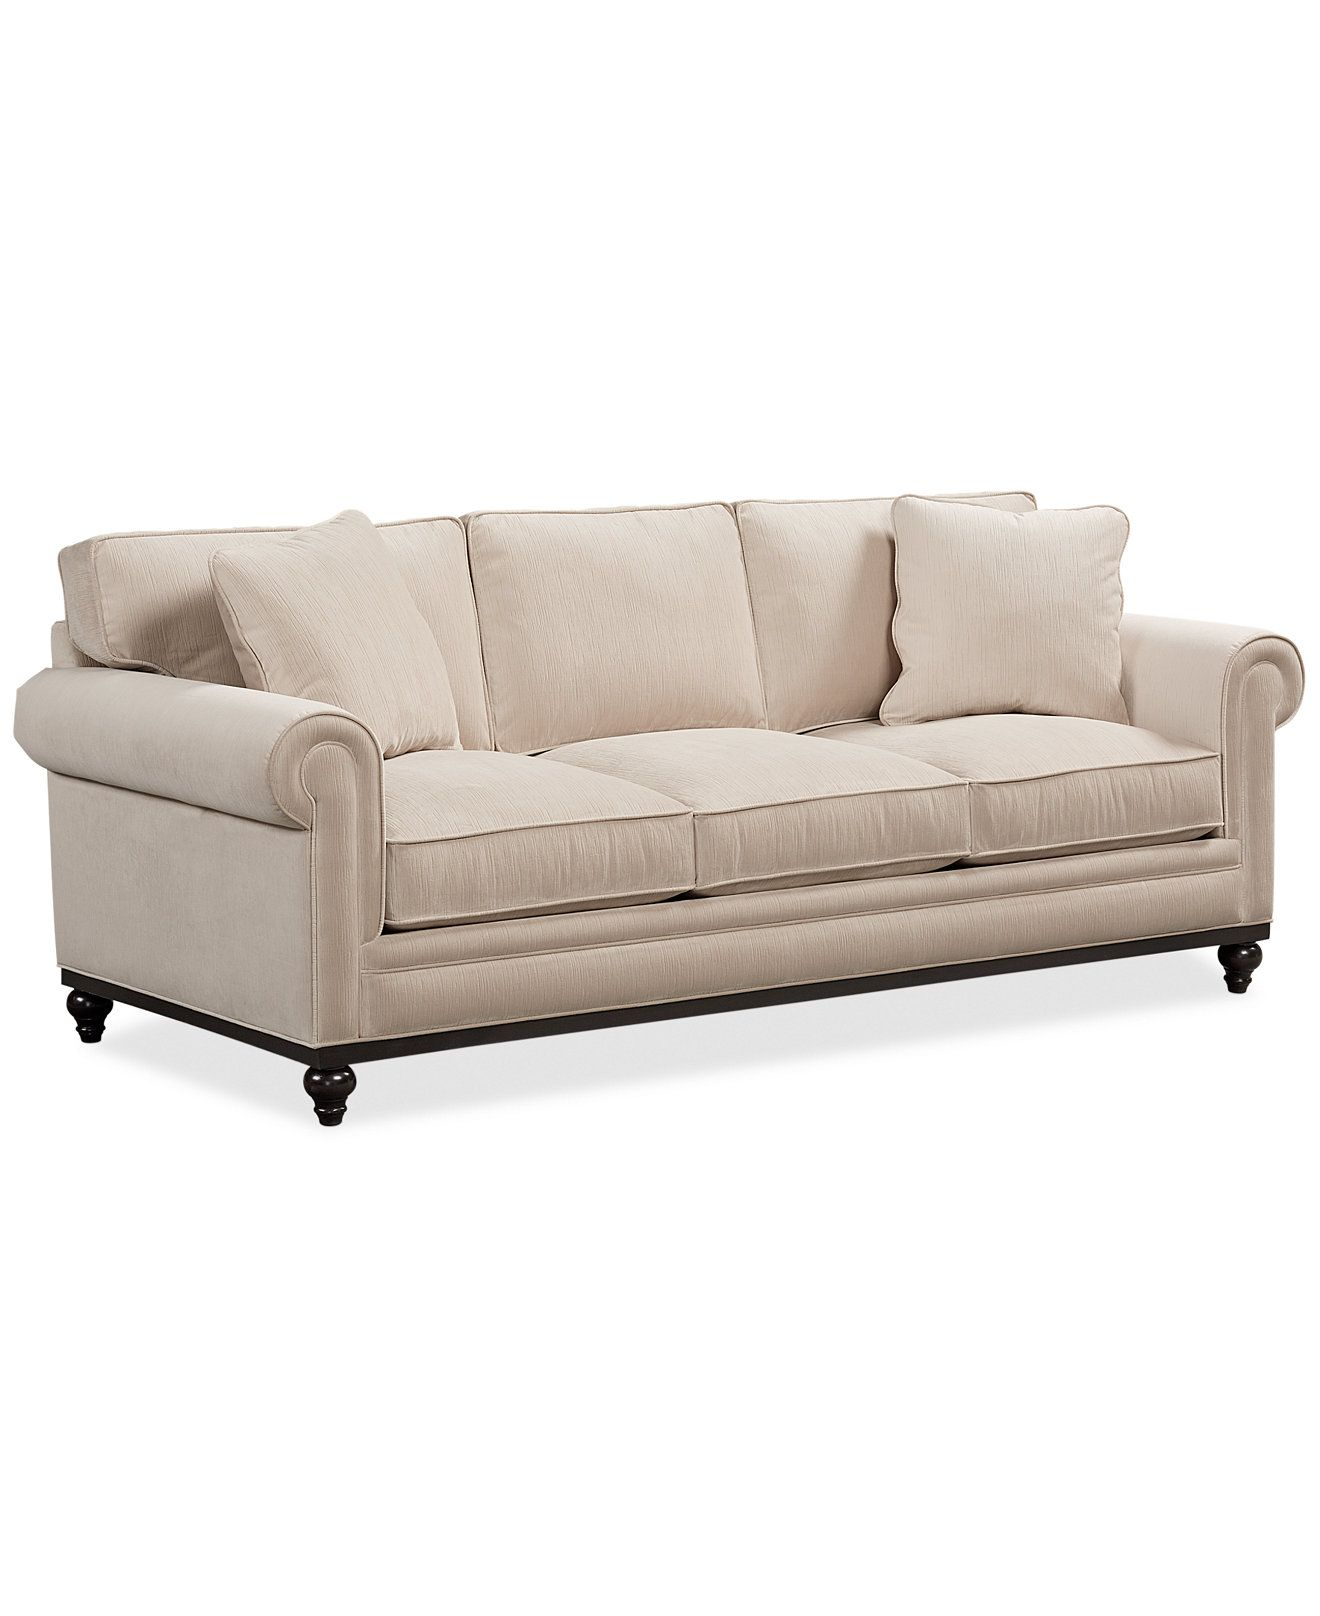 Martha Stewart Collection New Club Fabric Roll Arm Sofa - Couches ...